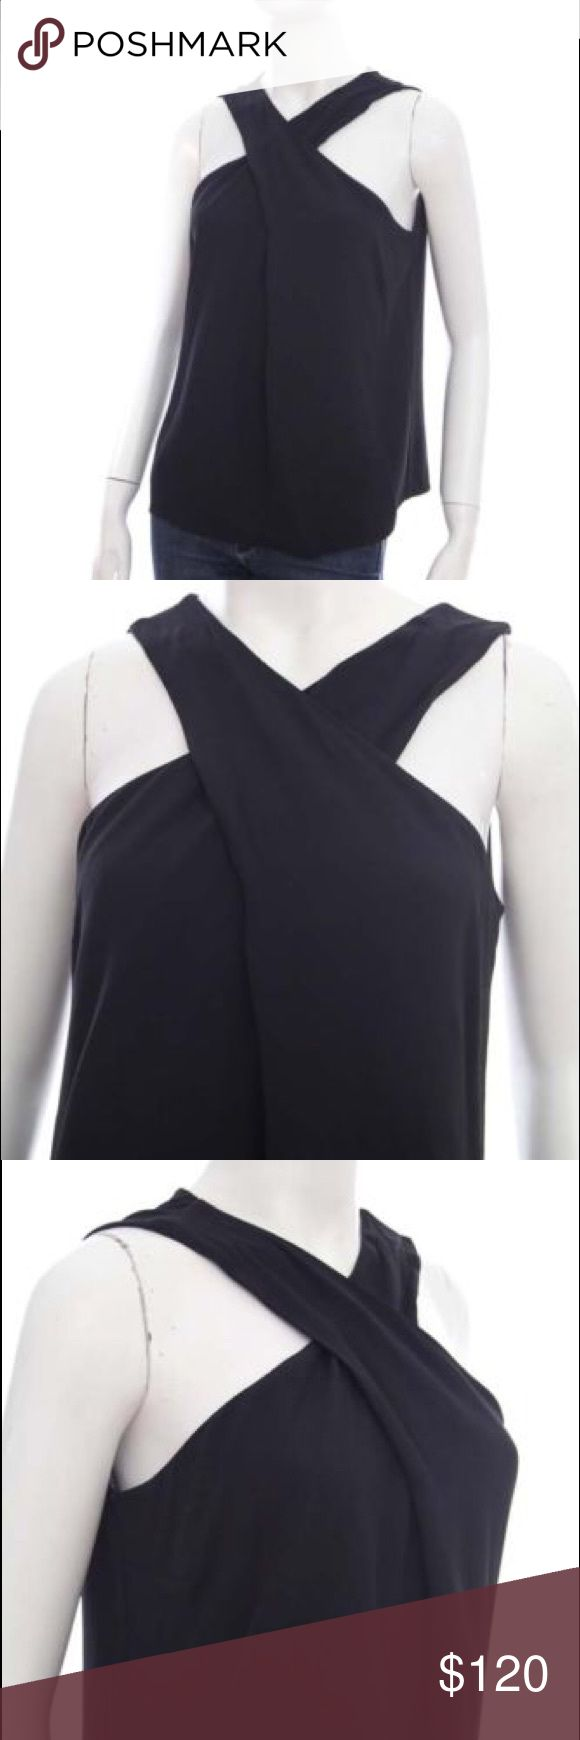 A.L.C Black Cross Neck Sleeveless Top NWT NWT ALC top that is in a great condition. It's in size 4 and was a little big for me. Great for a night out! A.L.C. Tops Blouses